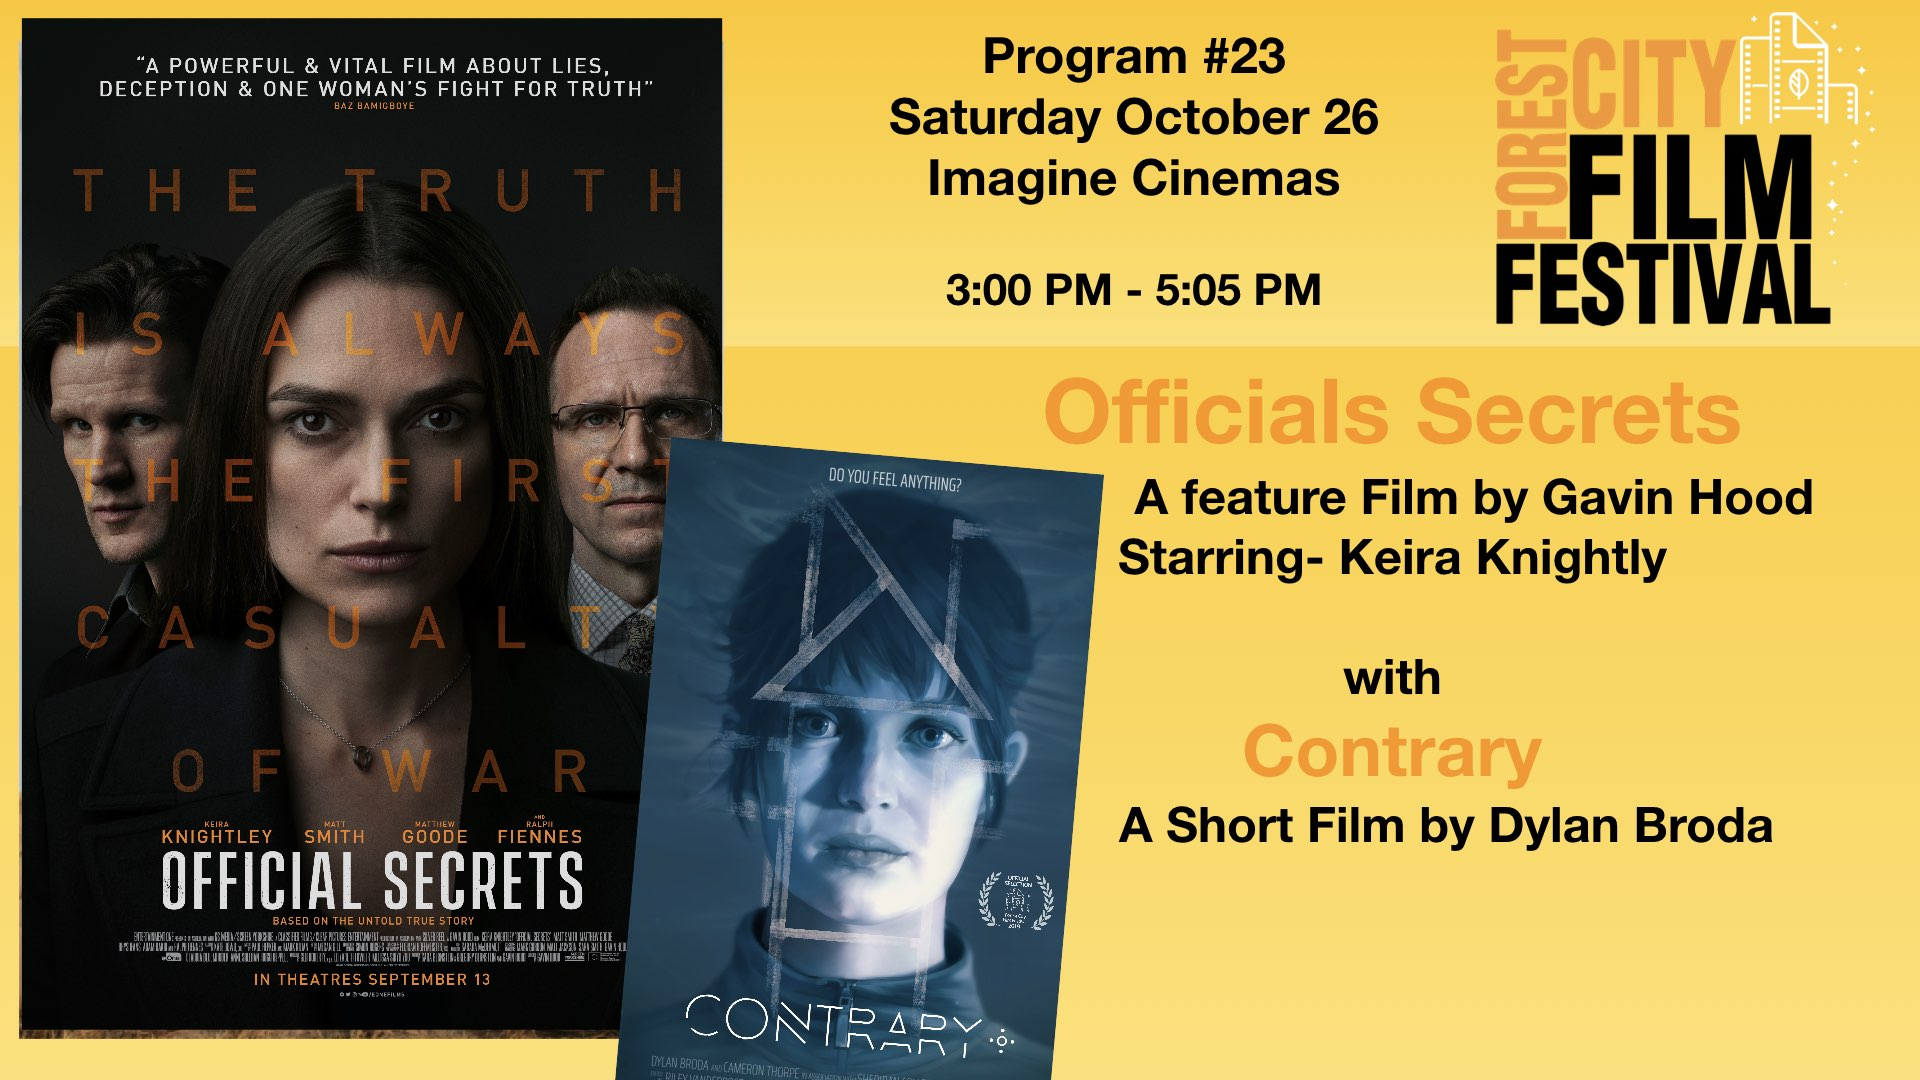 FCFF 2019 - Saturday Afternoon Imagine Program #23 - Official Secrets & Contrary